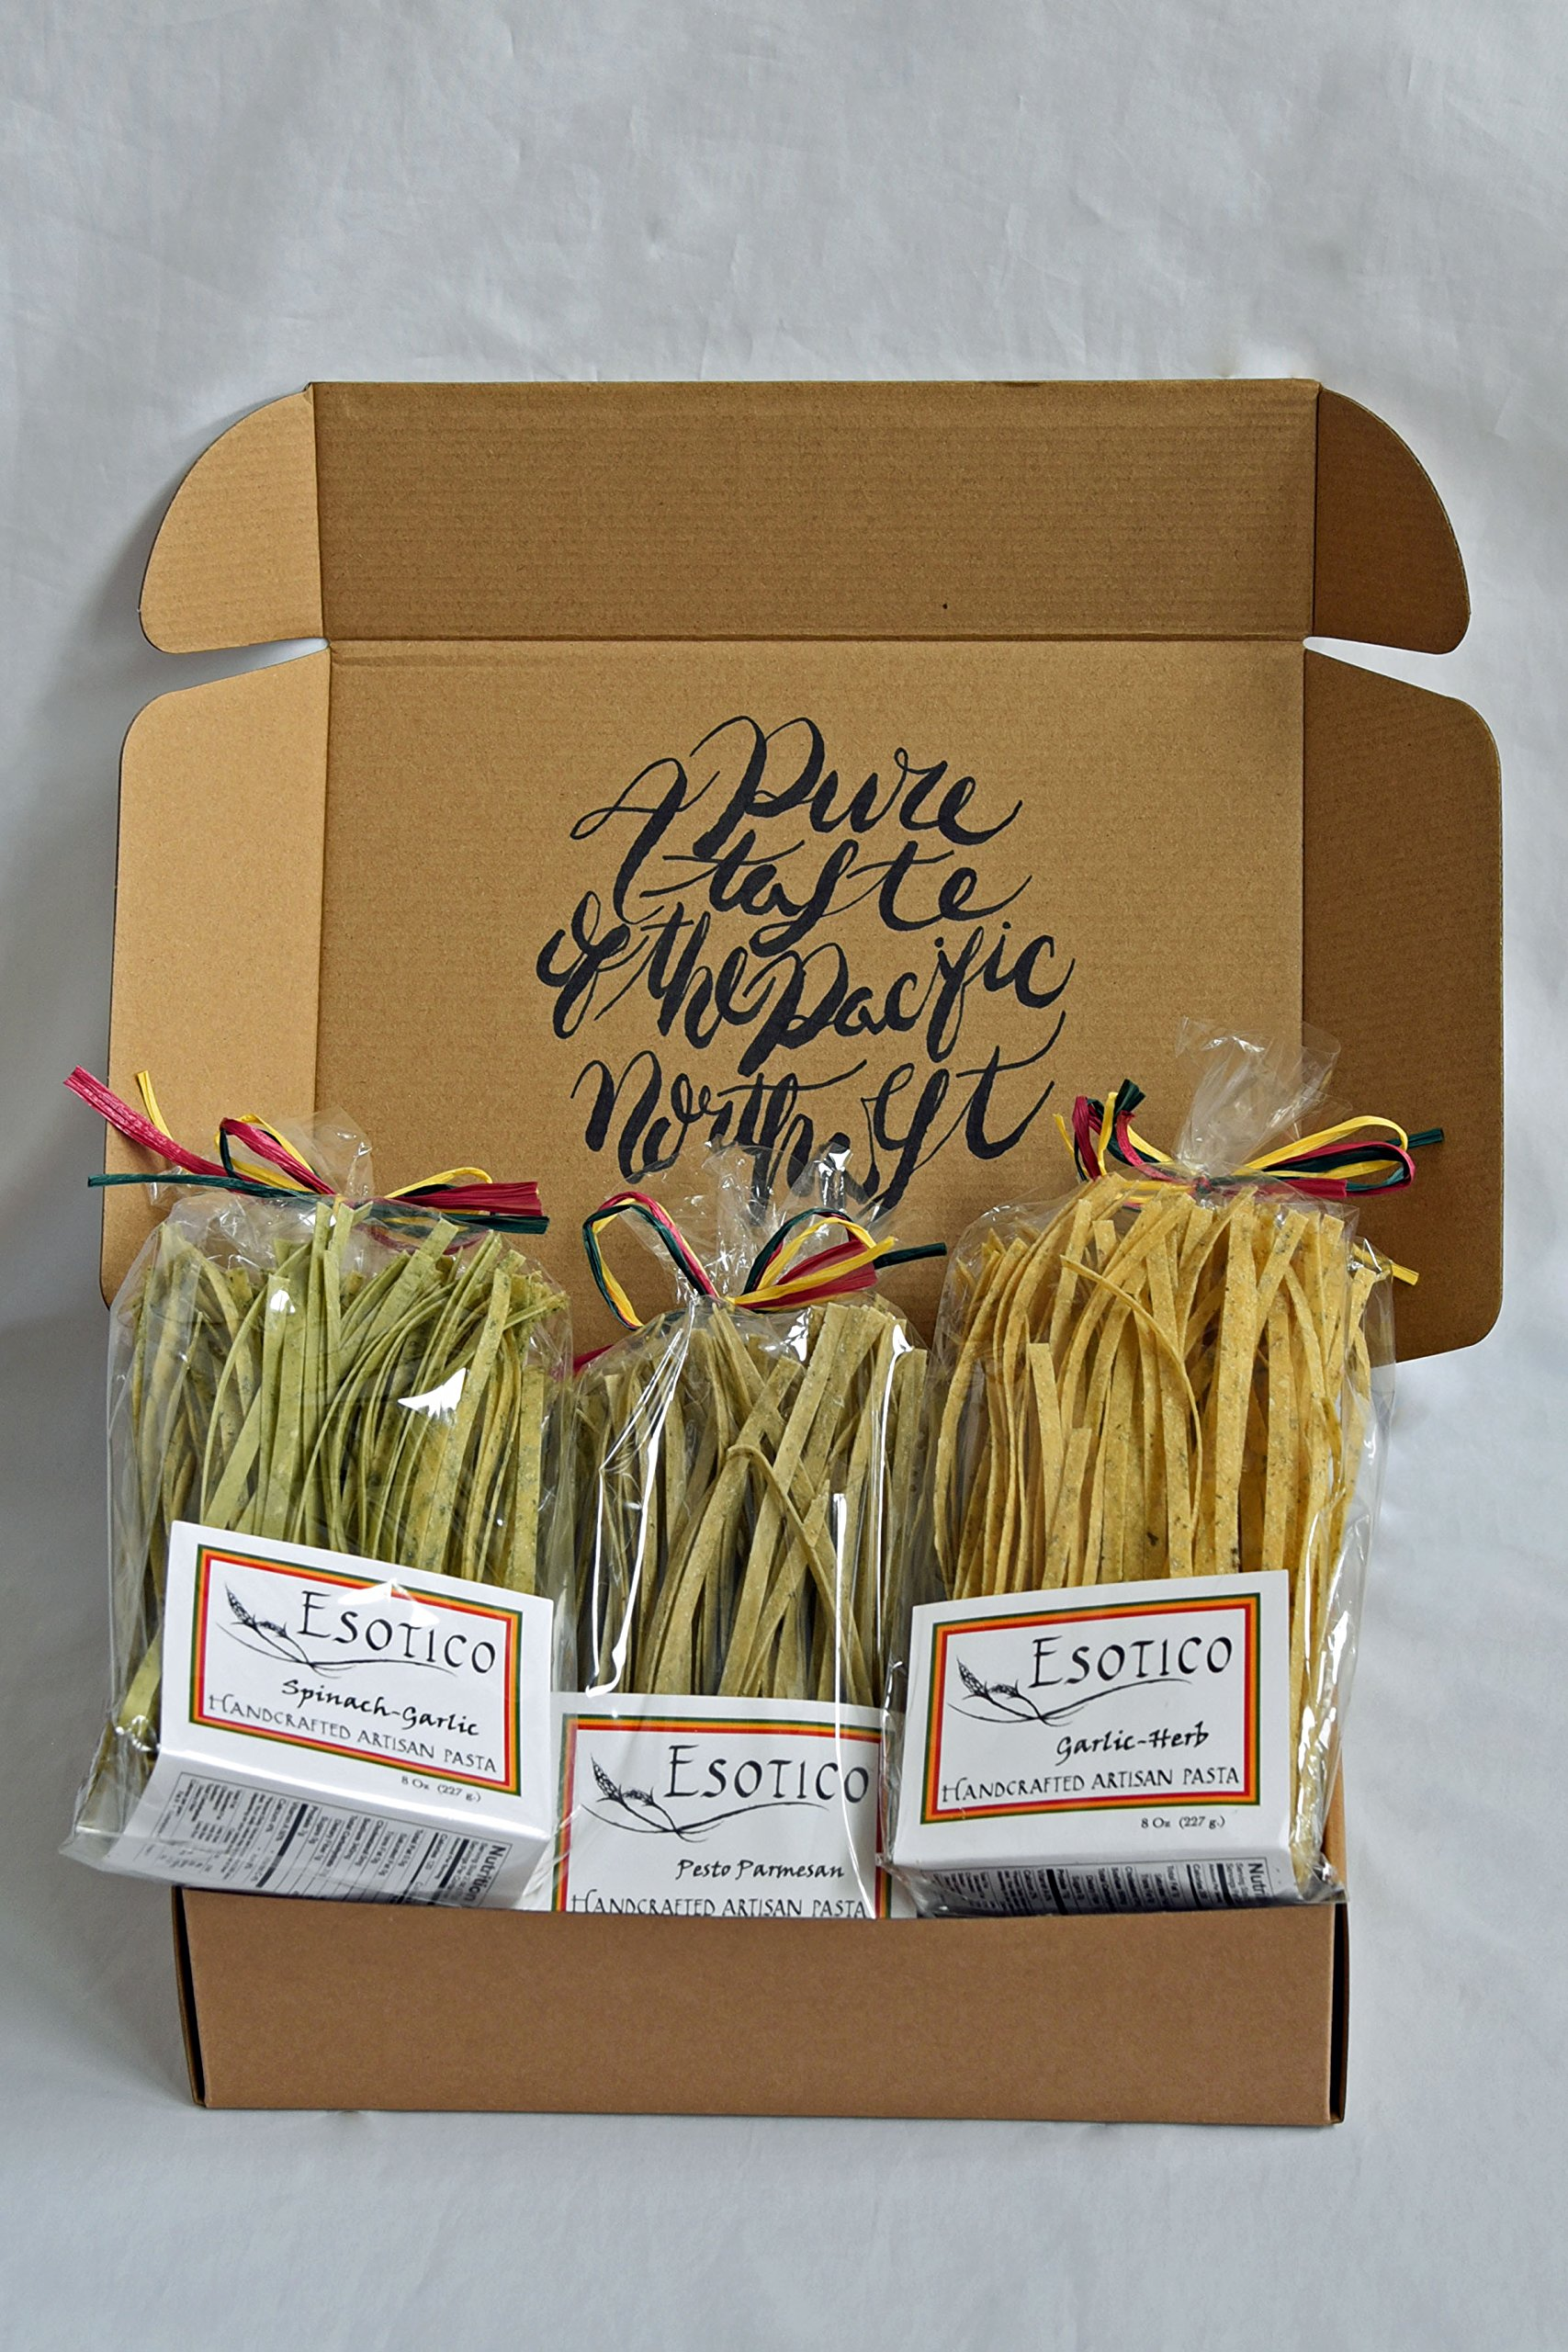 Artisanal PASTA ESSENTIAL VARIETY (pack of 3) - SPINACH GARLIC, HERB AND GARLIC AND PESTO PARMESAN by Esotico